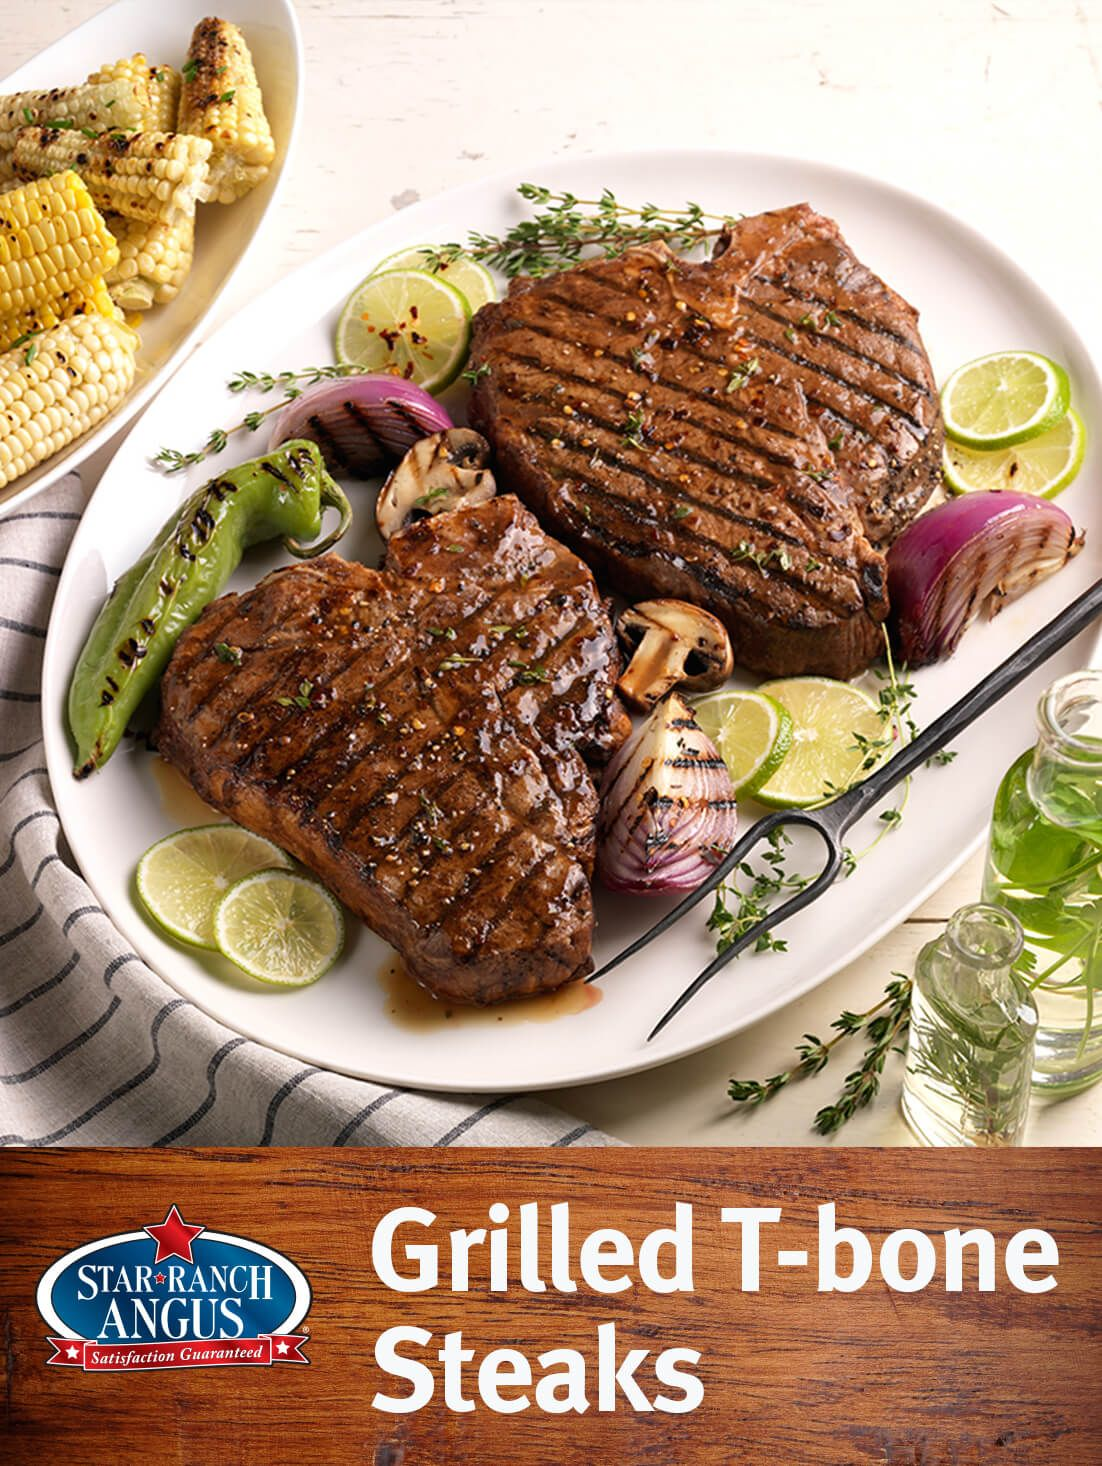 Grilled T Bone Steaks Star Ranch Angus Beef Recipe Grilled T Bone Steak Steak T Bone Steak